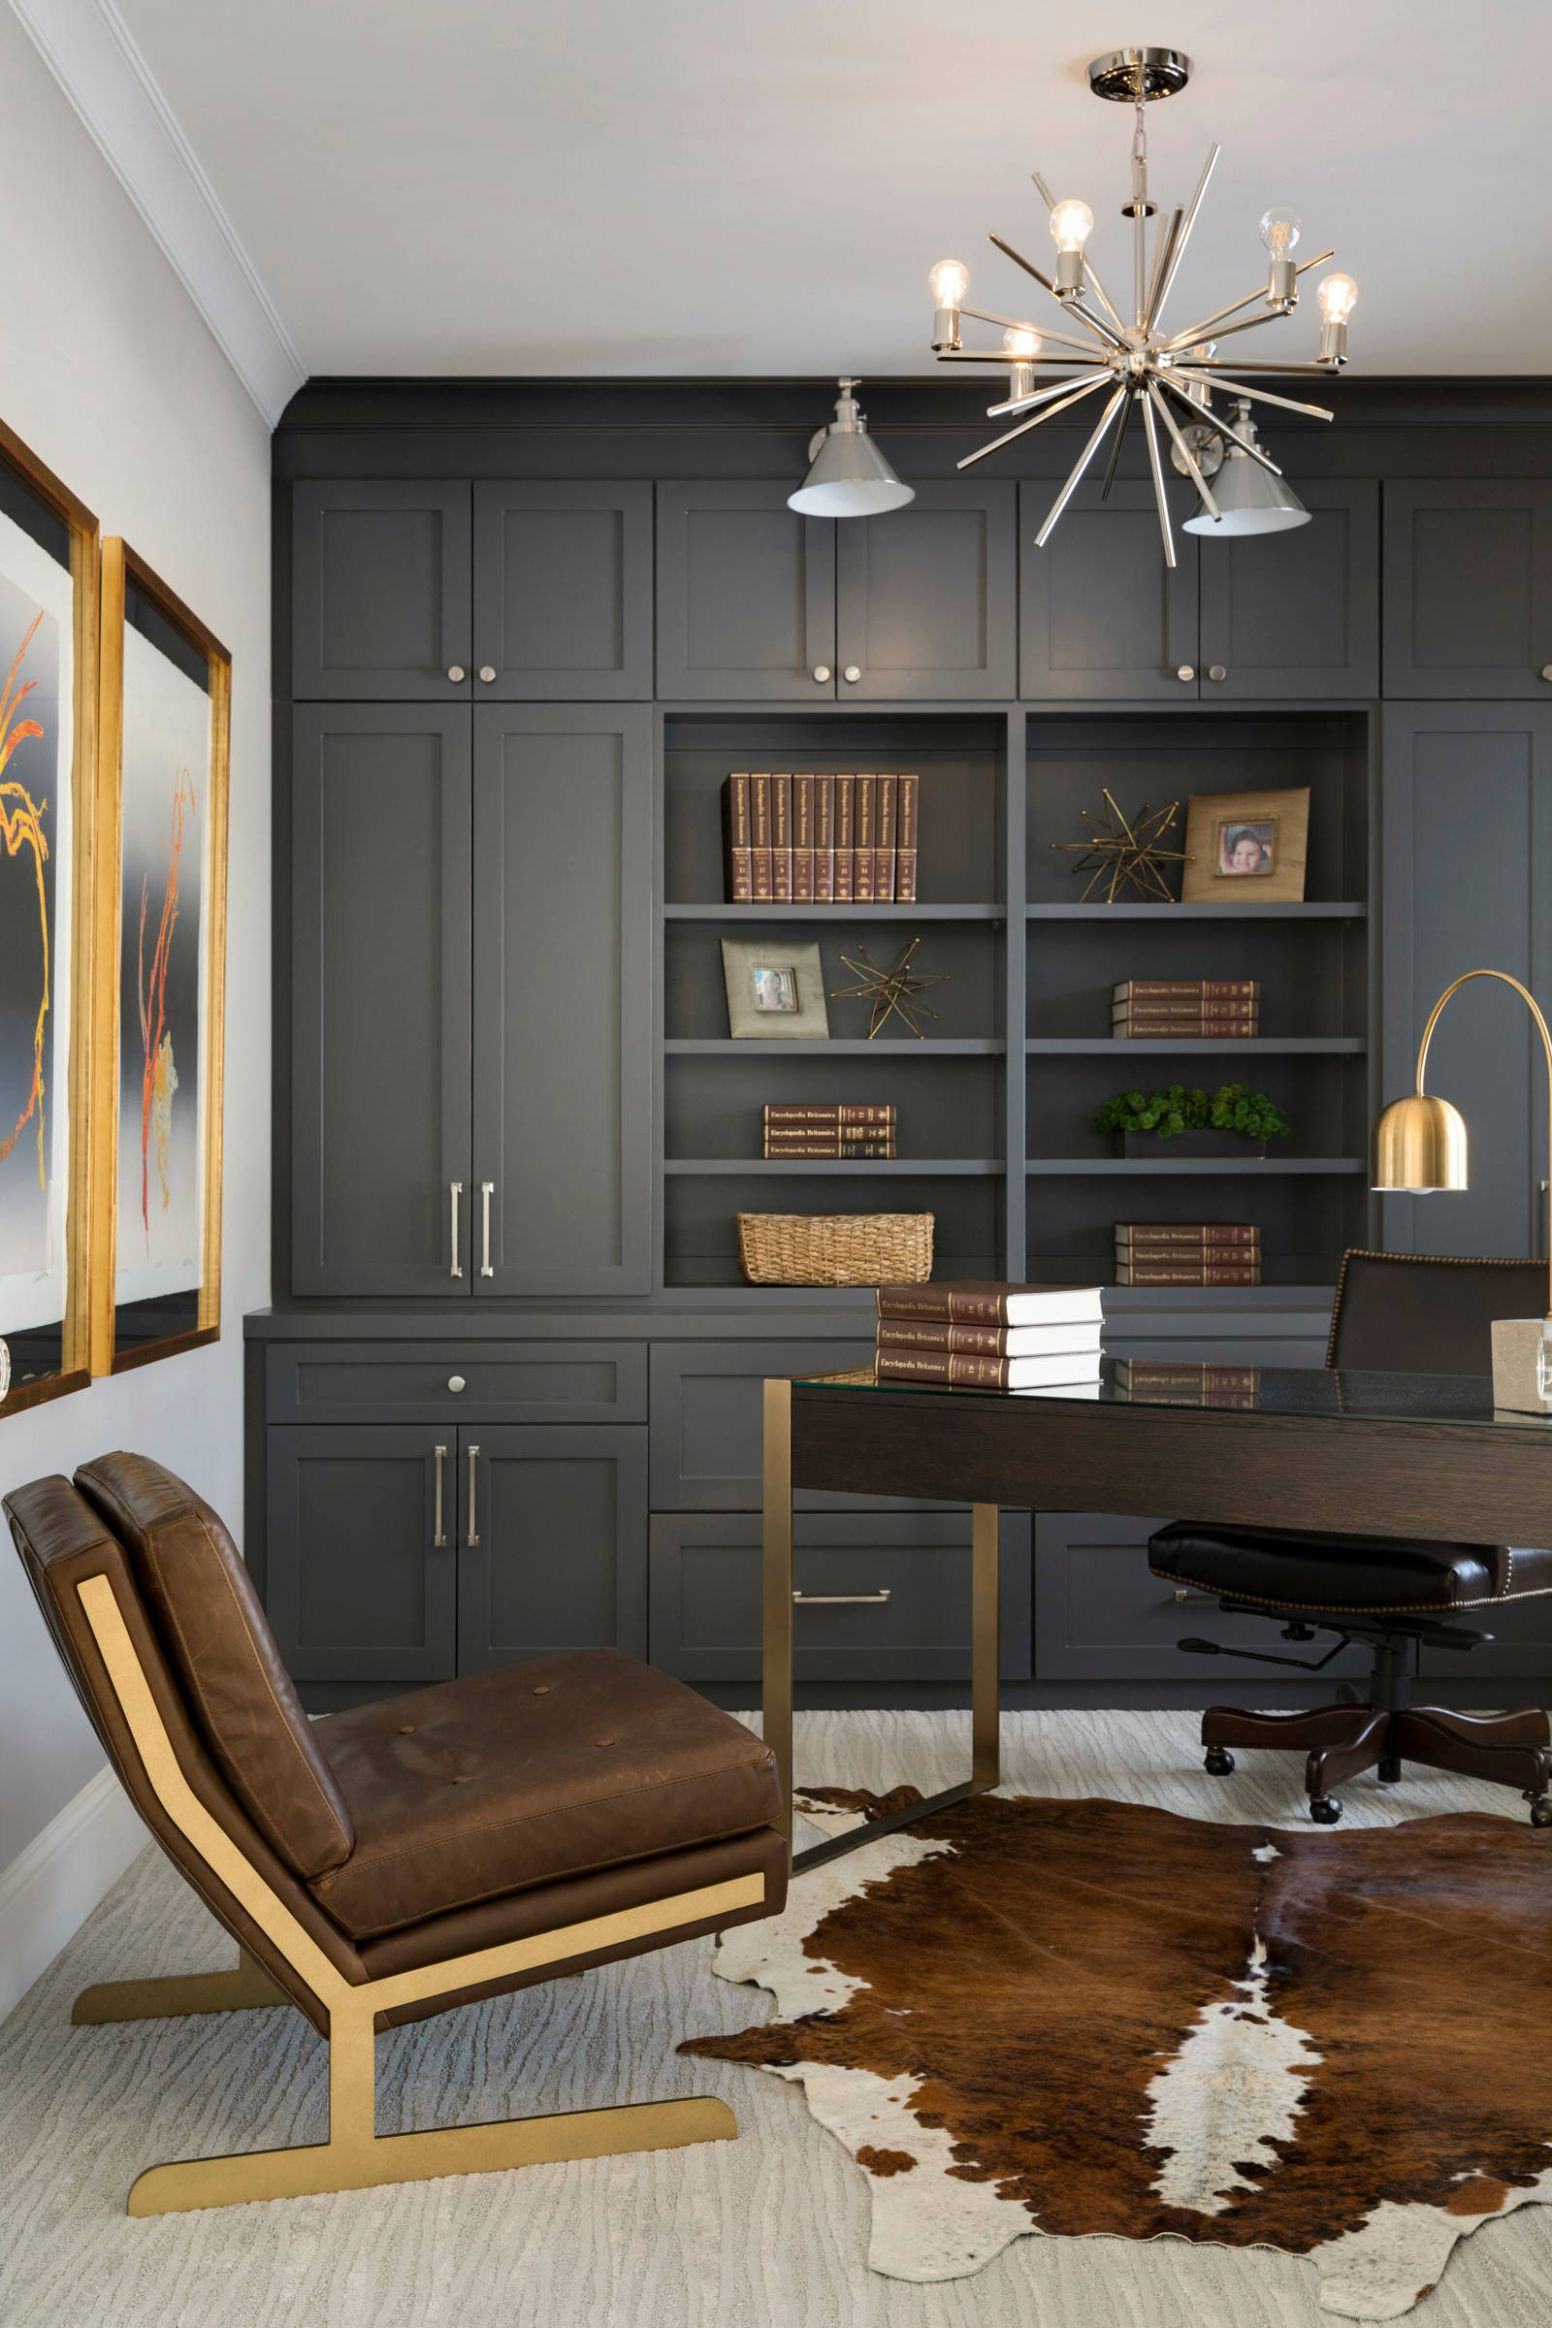 9 Beautiful Home Office Pictures & Ideas | Houzz - home office ideas houzz